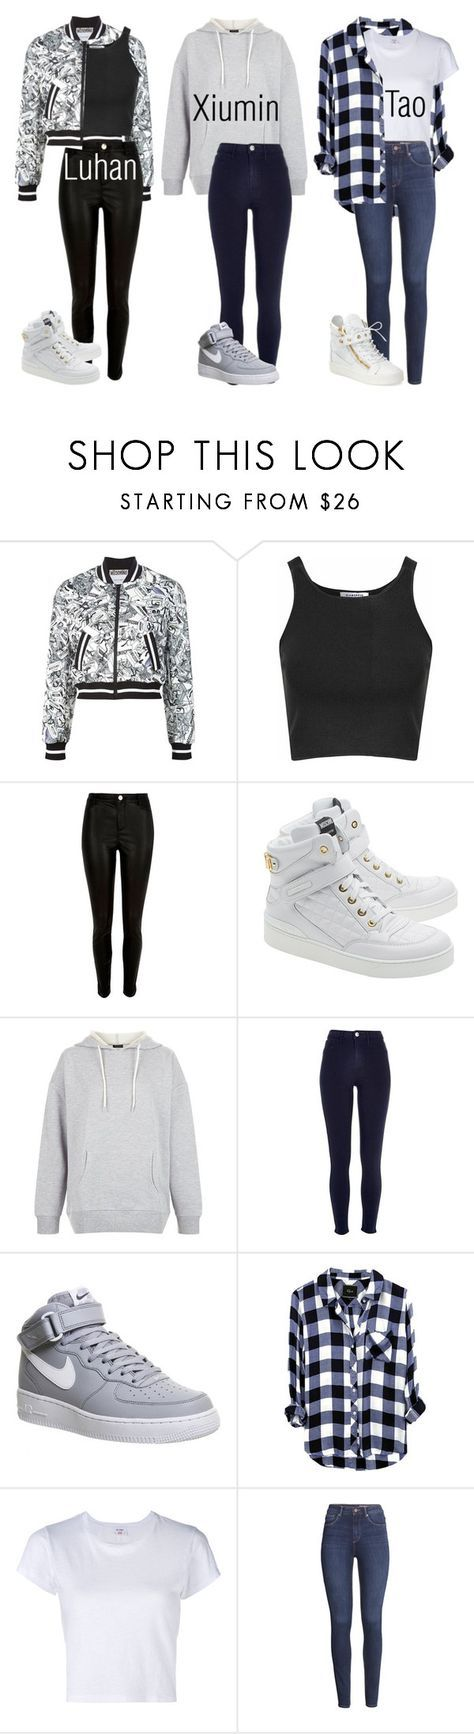 """""""Exo Inspired Outfits Pt.4"""" by fangirlkaly8102 ❤ liked on Polyvore featuring Moschino, Glamorous, River Island, New Look, NIKE, RE/DONE, H&M, Giuseppe Zanotti, kpop and EXO"""